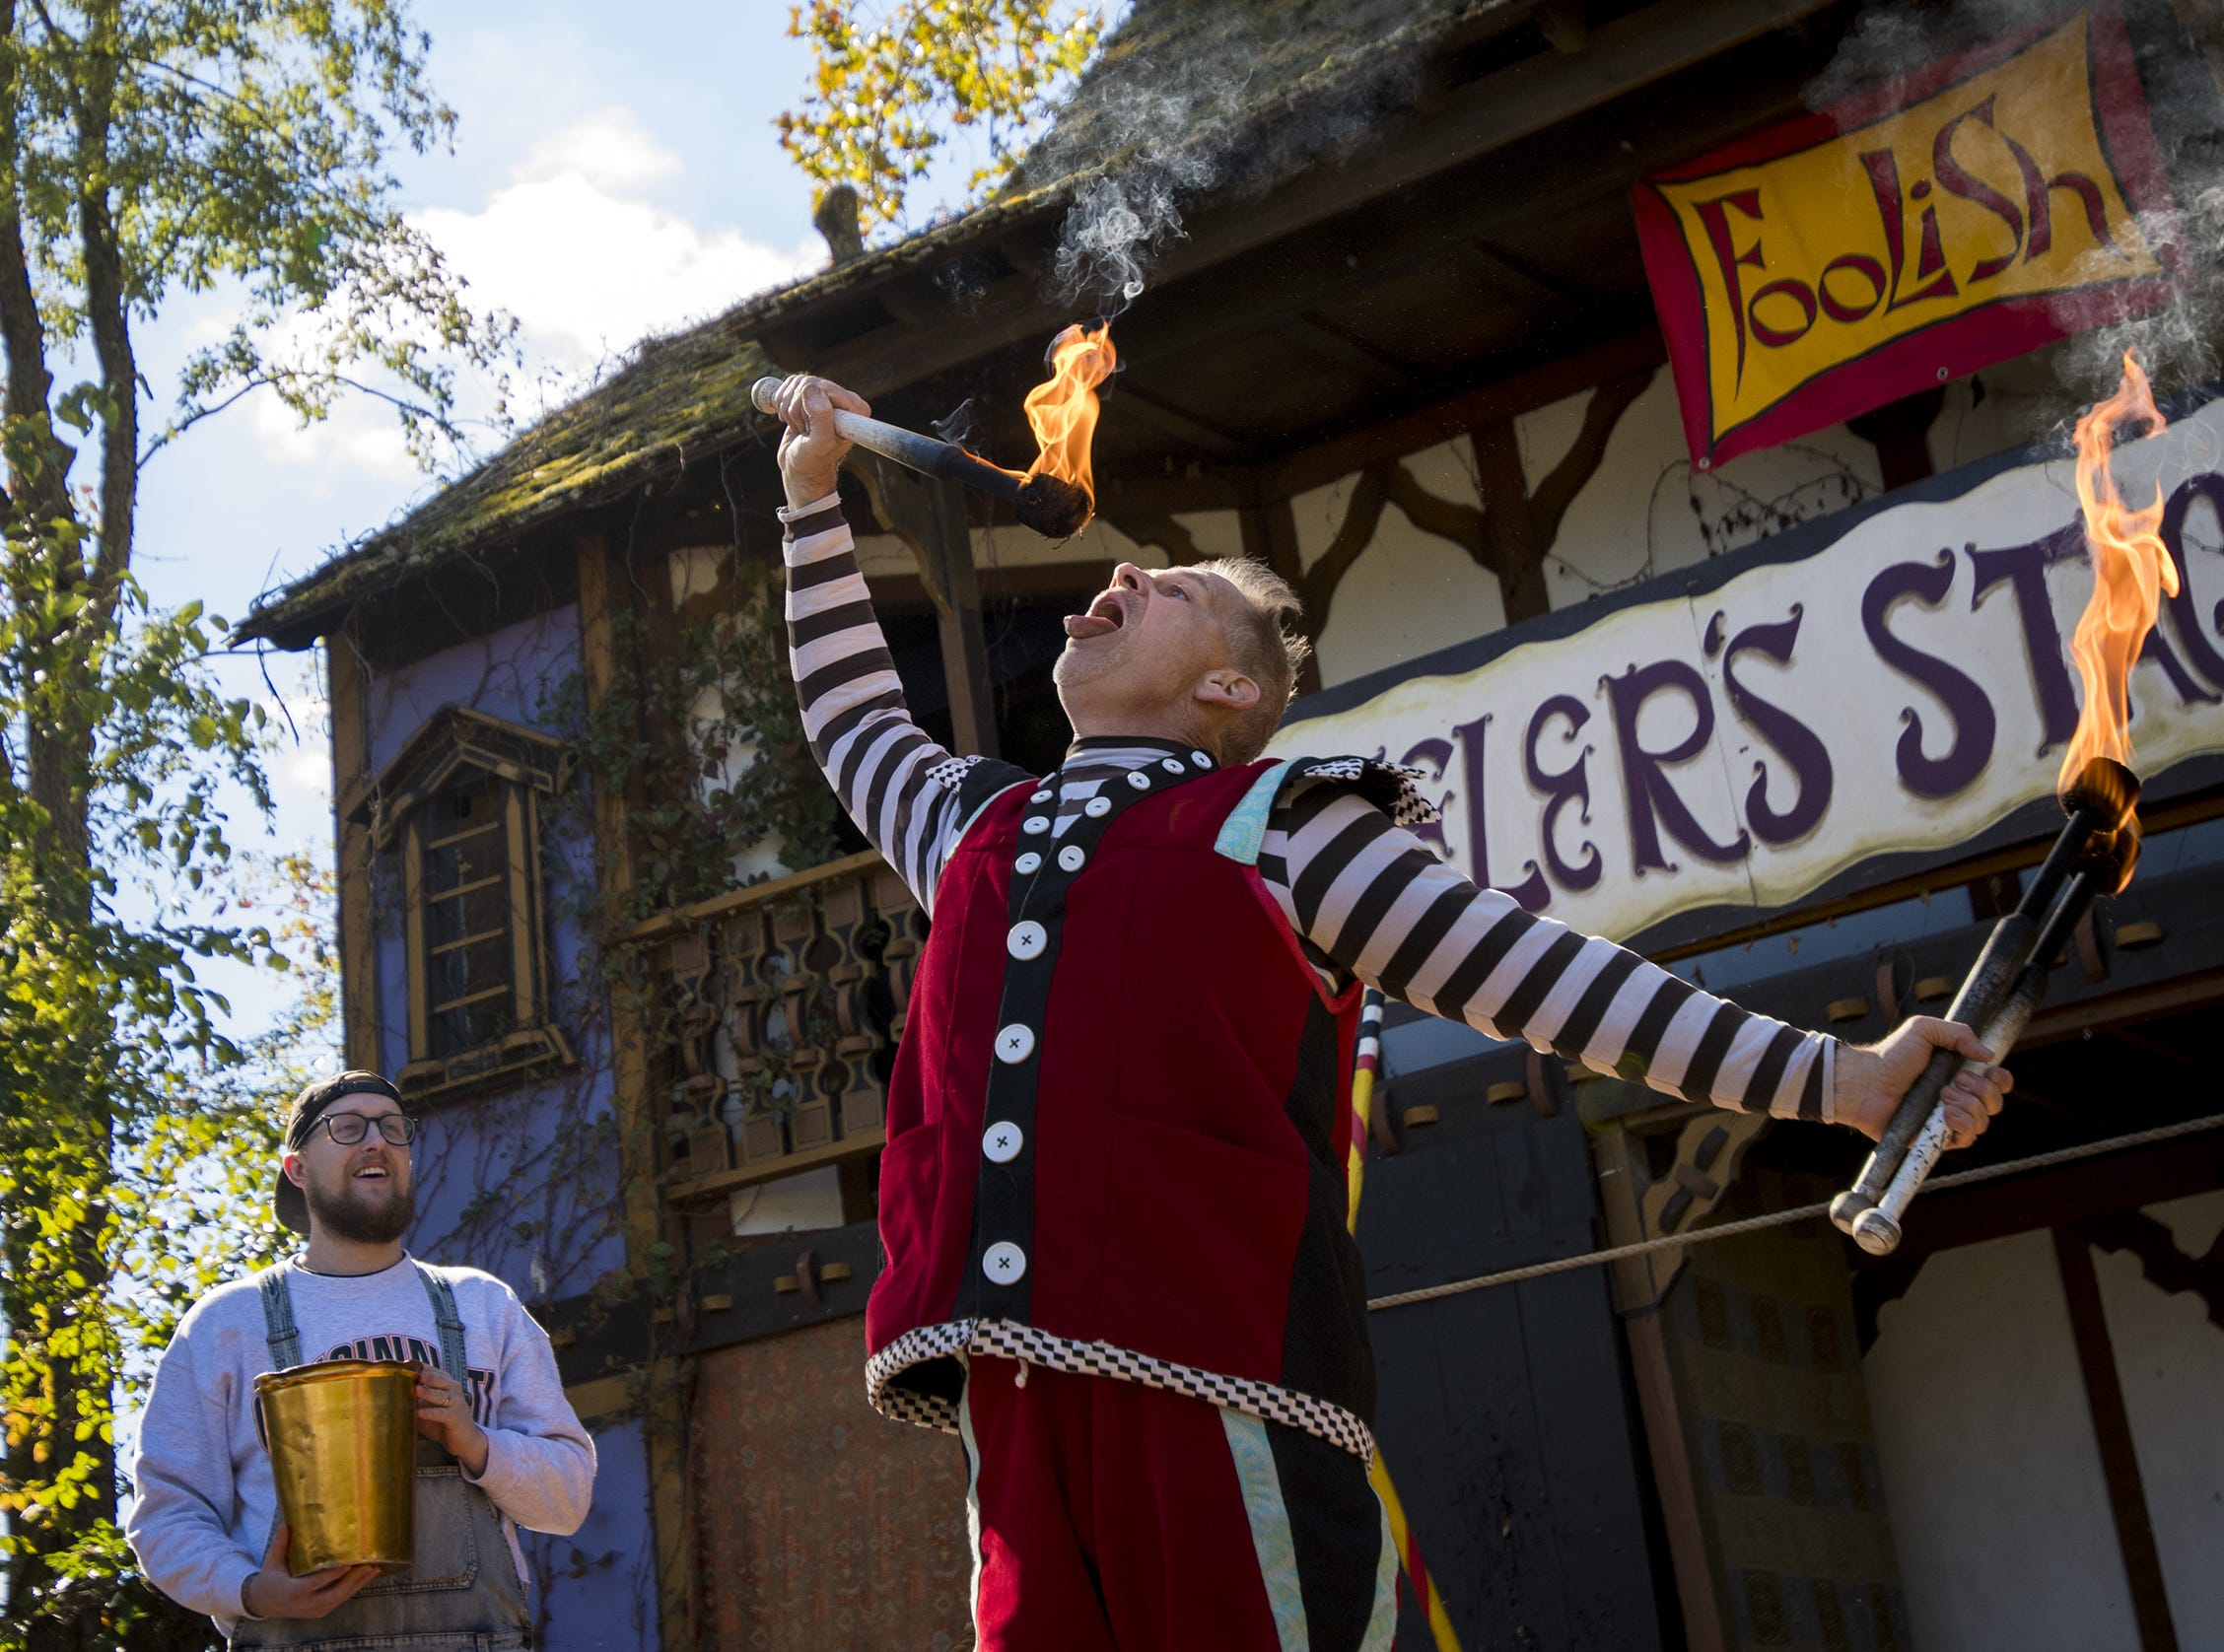 Stage performer Moonie tries to blow out his fire sticks during the Ohio Renaissance Festival Sunday, October 21, 2018 in Waynesville, Ohio.